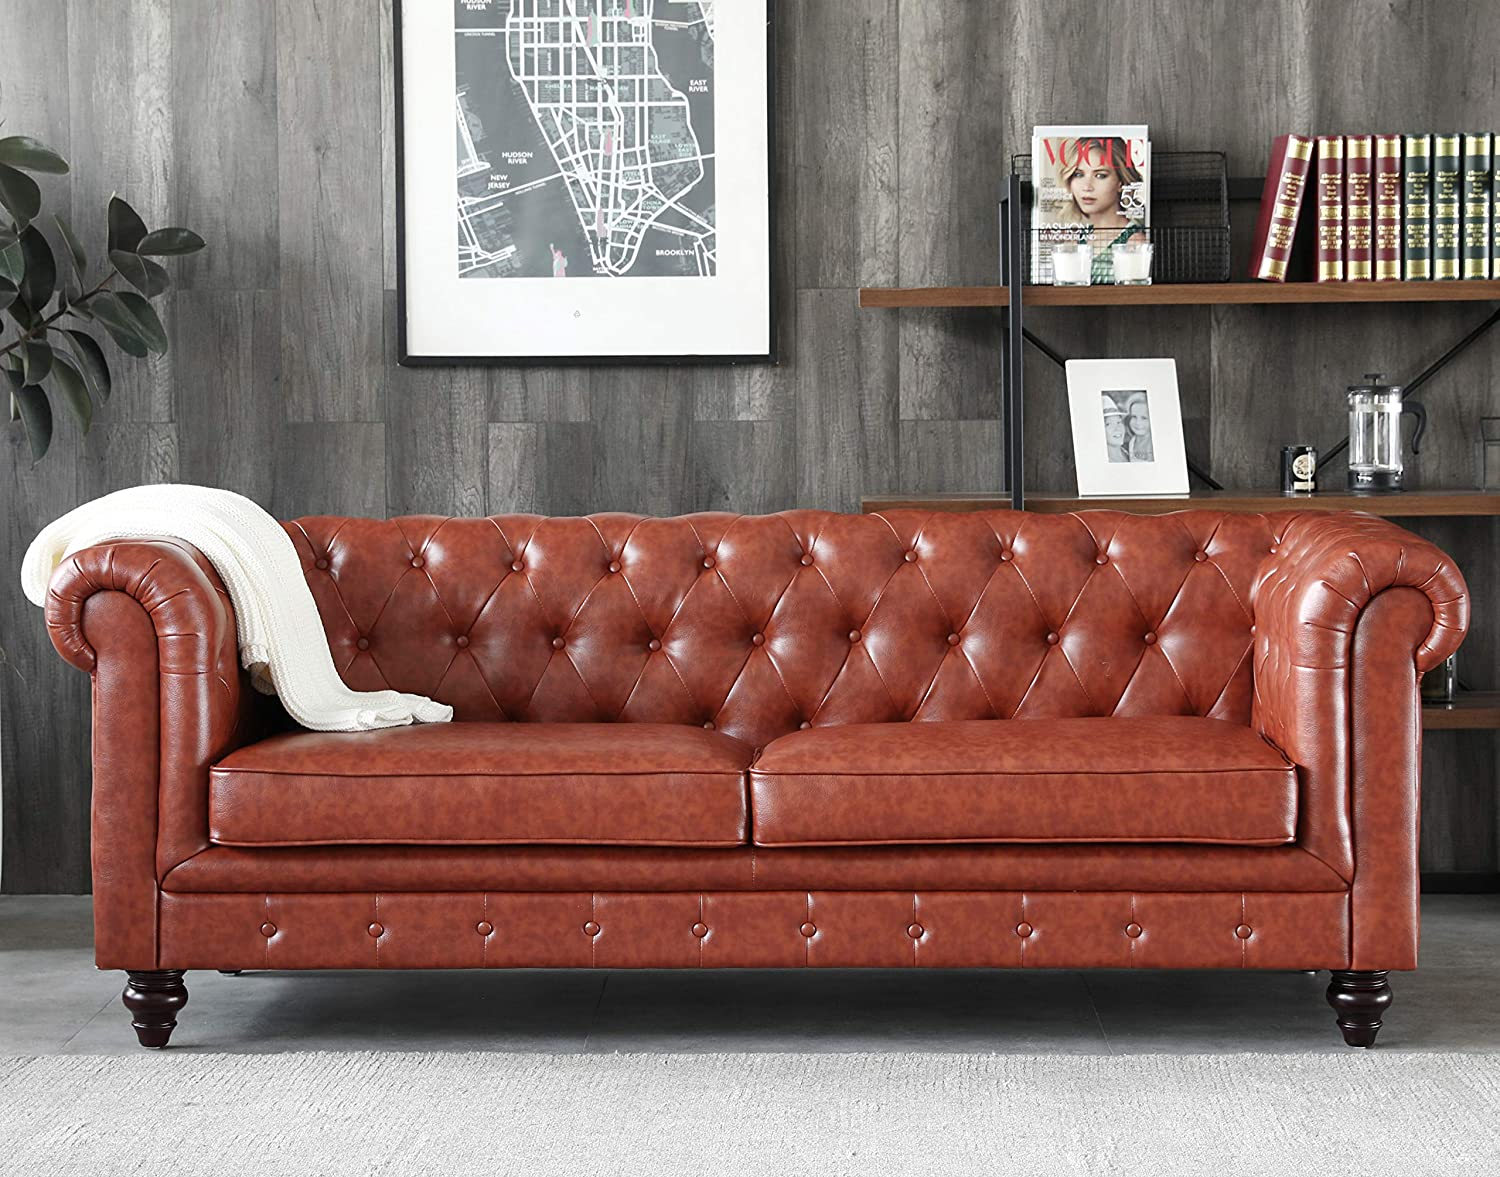 Victoria Chesterfield Leather Sofa Tufted Classic Luxury Romance Set Amazon In Home Kitchen